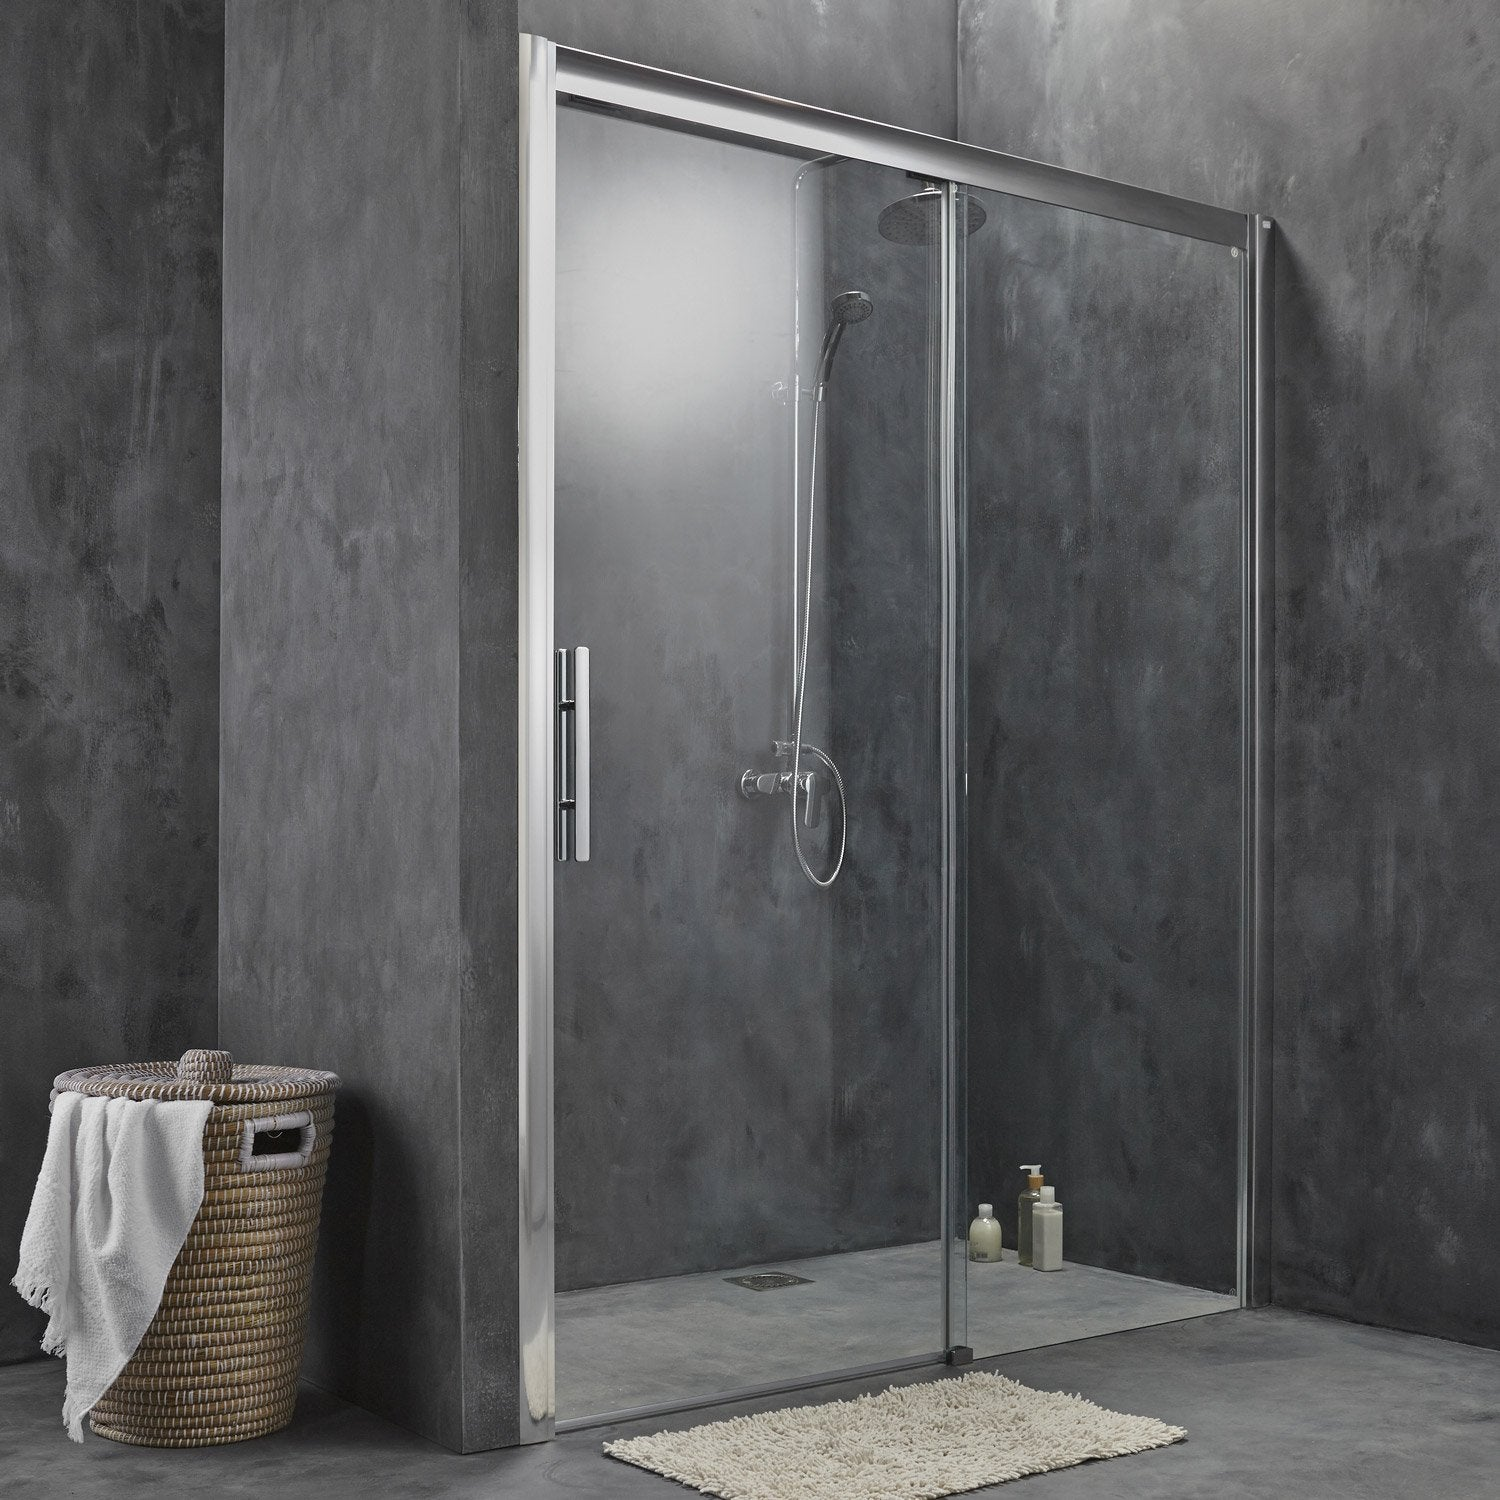 Awesome Porte De Douche Coulissante Cm Transparent Adena With Installer Une  Paroi De Douche